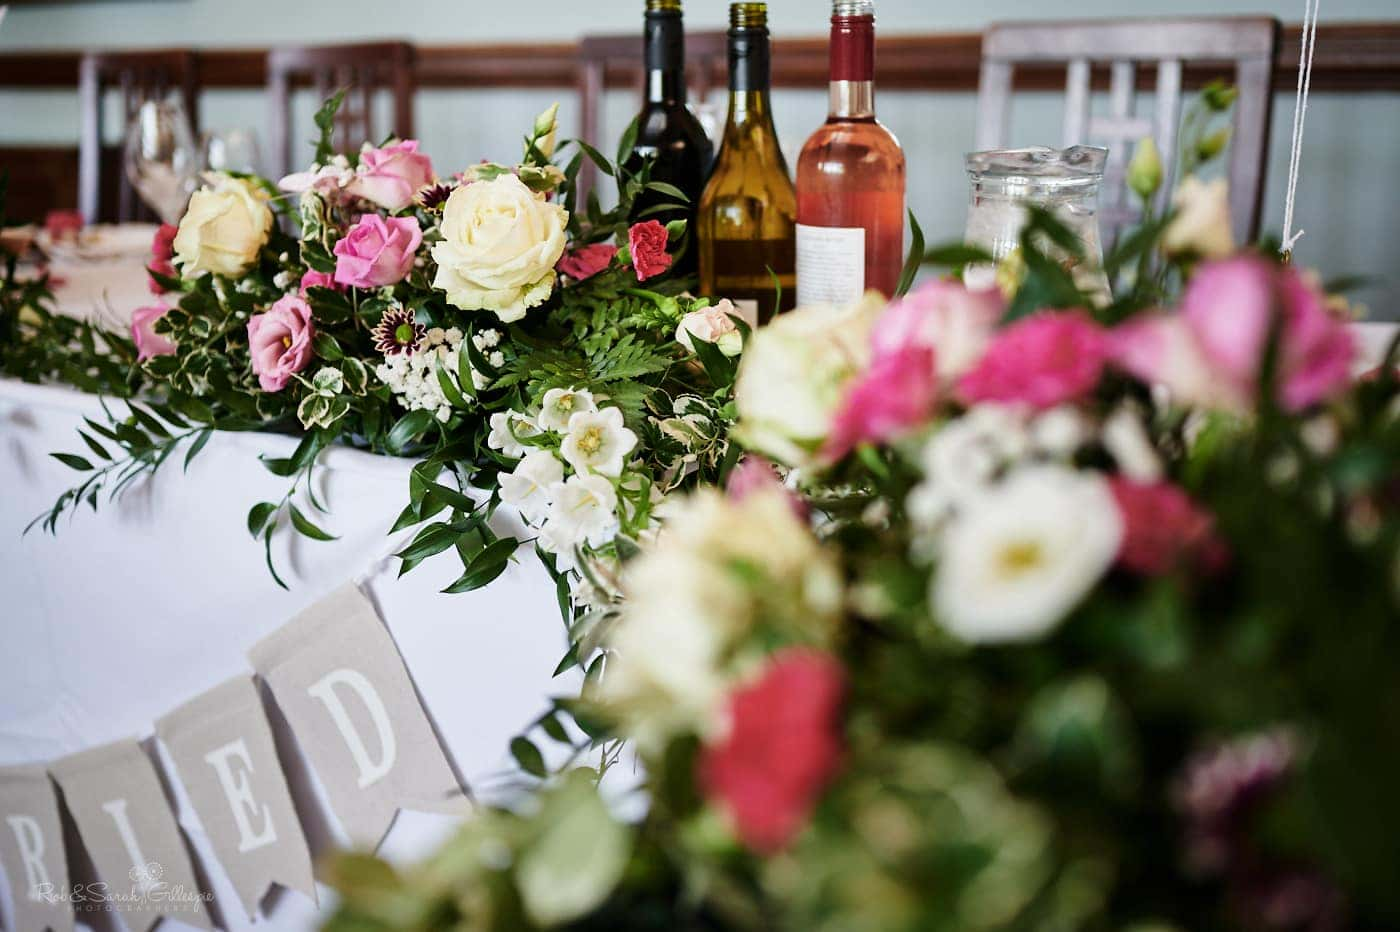 Flowers and wine bottles on table ready for wedding meal